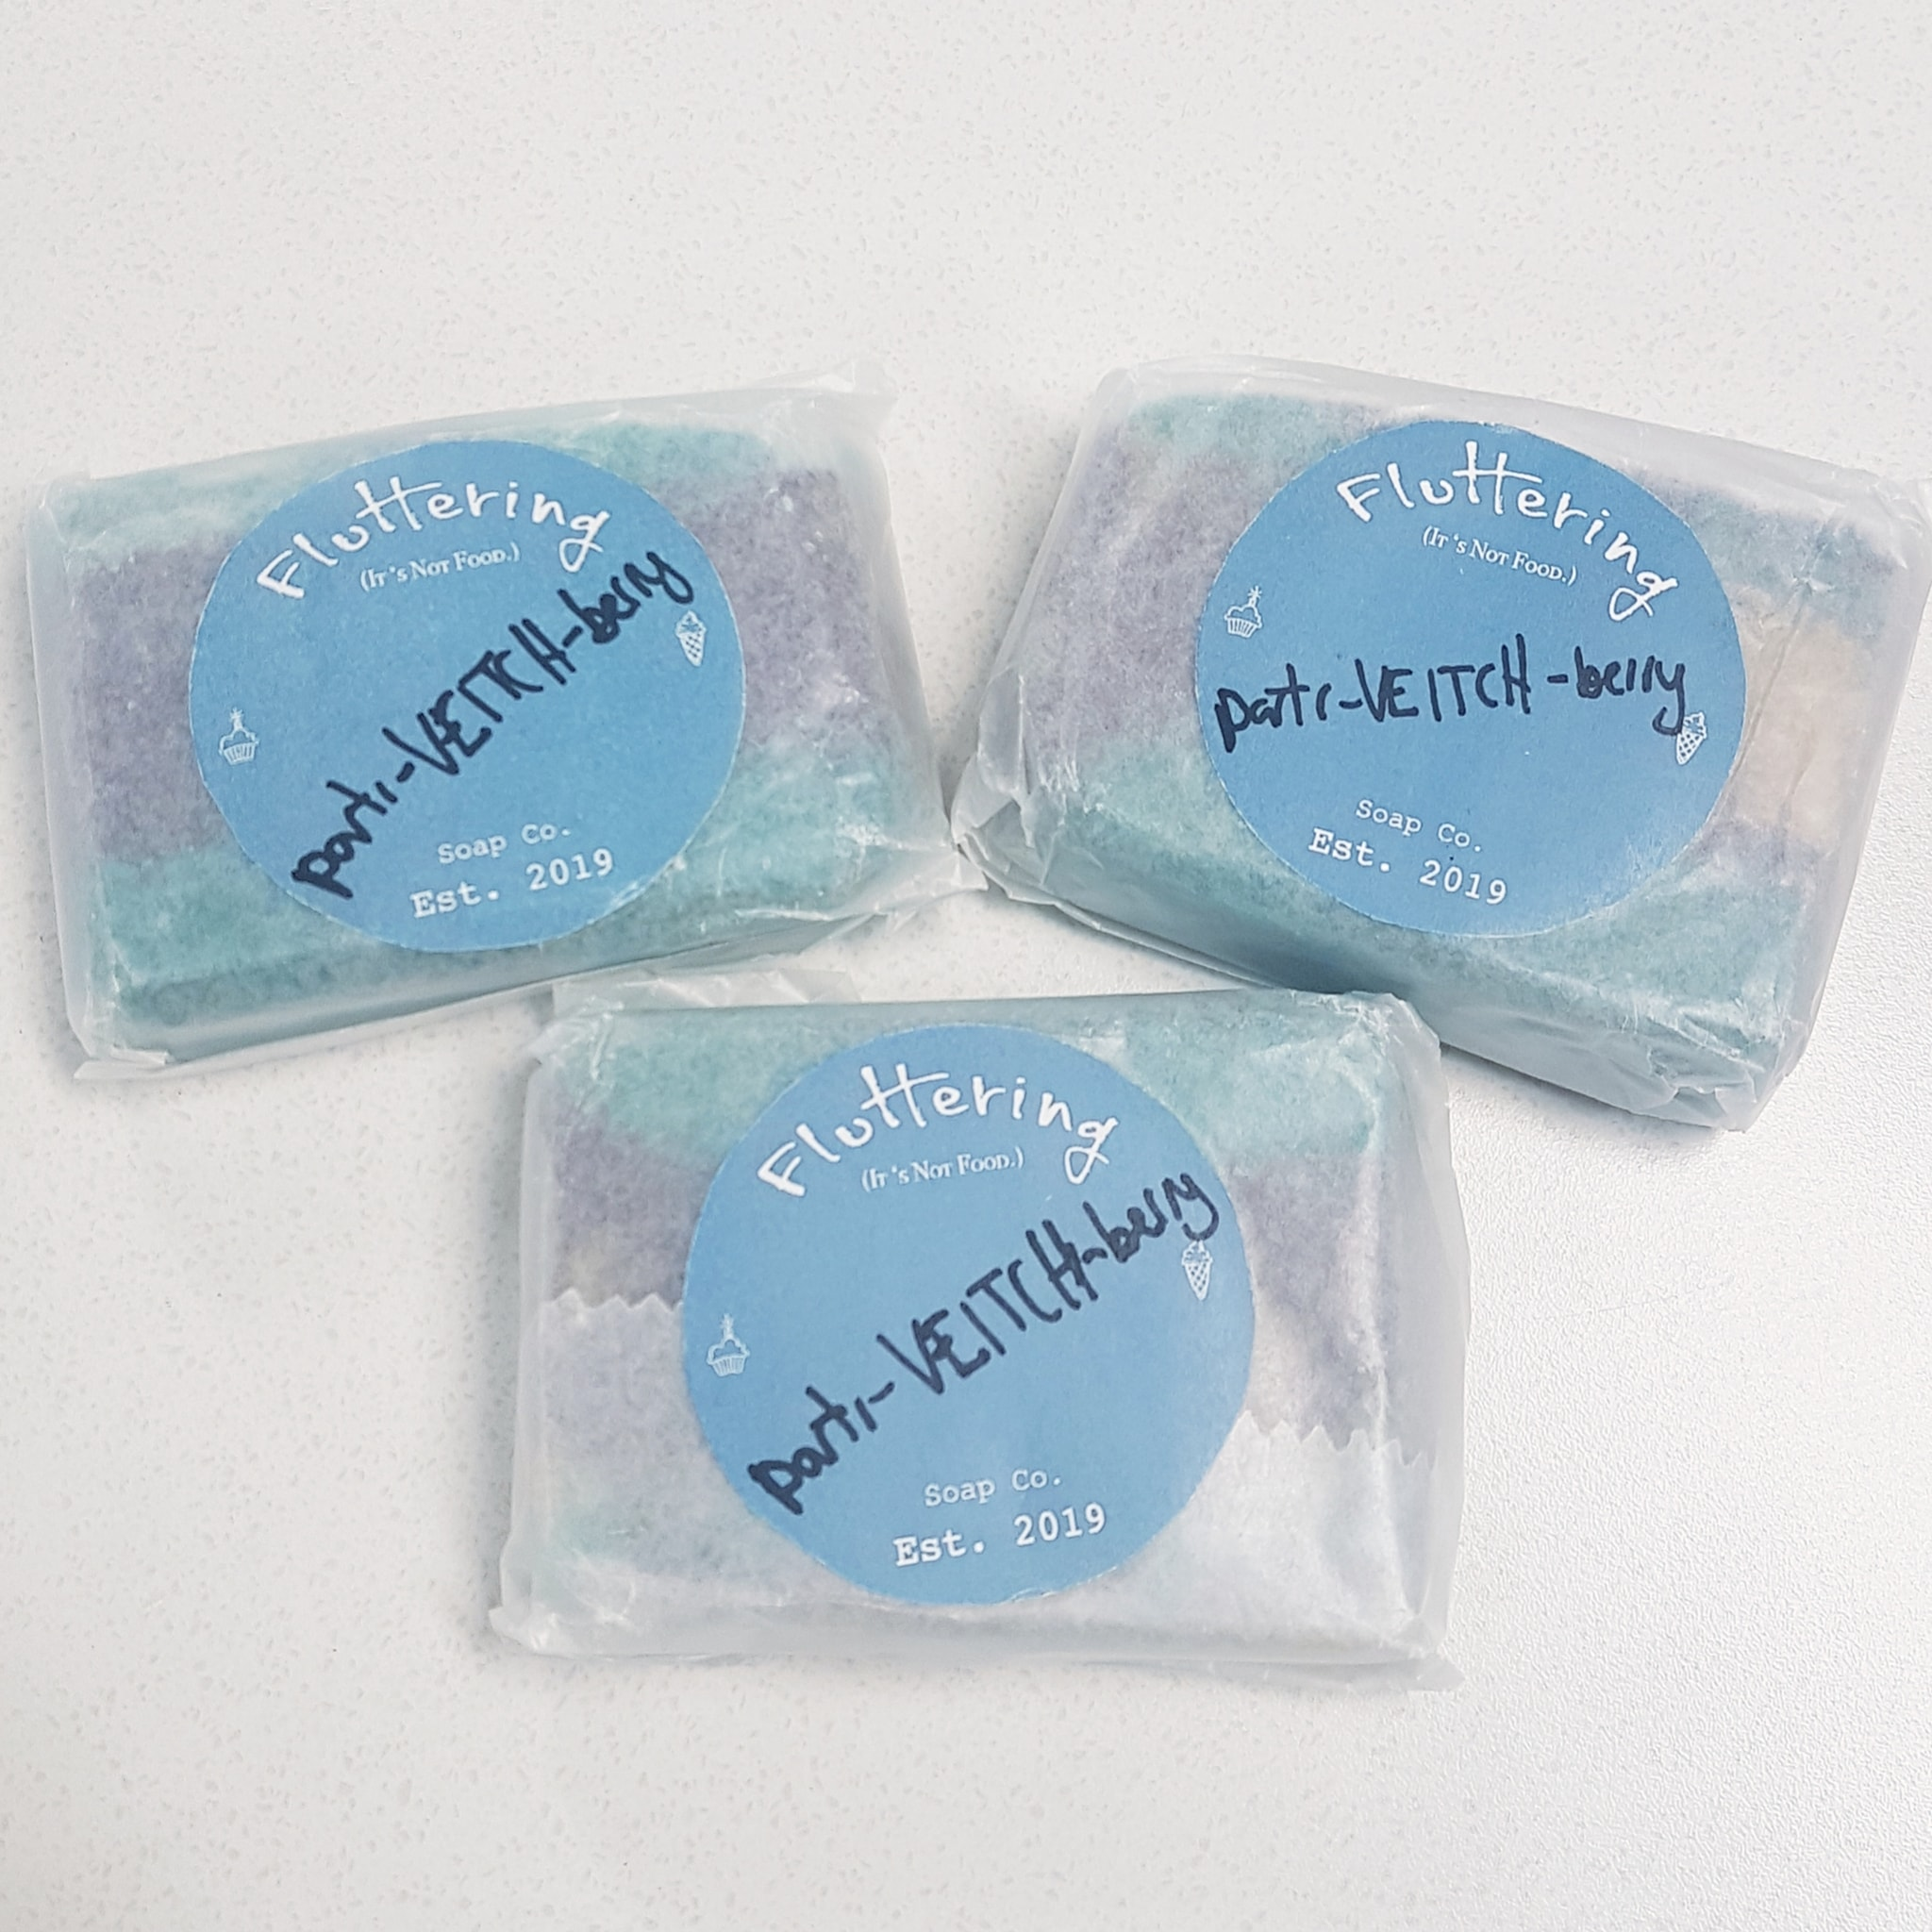 Patr-Veitch-Berry - Allison Crowe's Fluttering Soap Co. - Veitch Wellness Centre Pharmasave